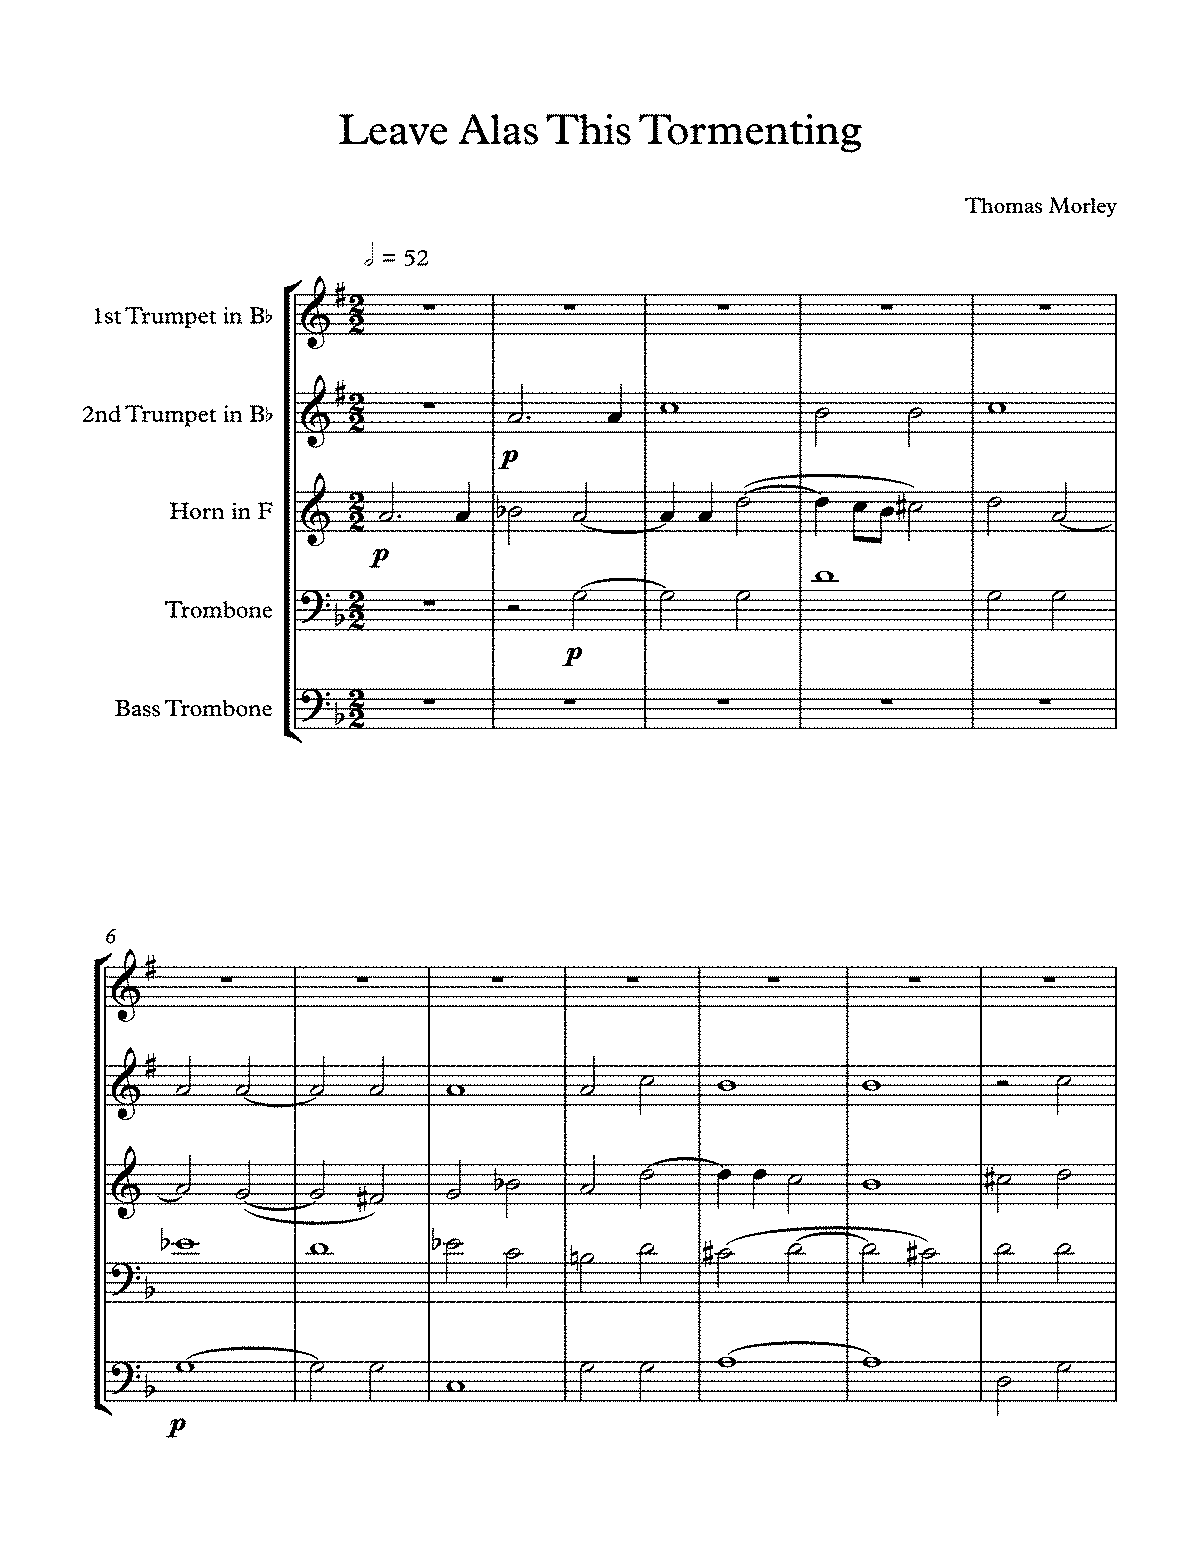 PMLP60454-Leave Alas This Tormenting - Full Score.pdf